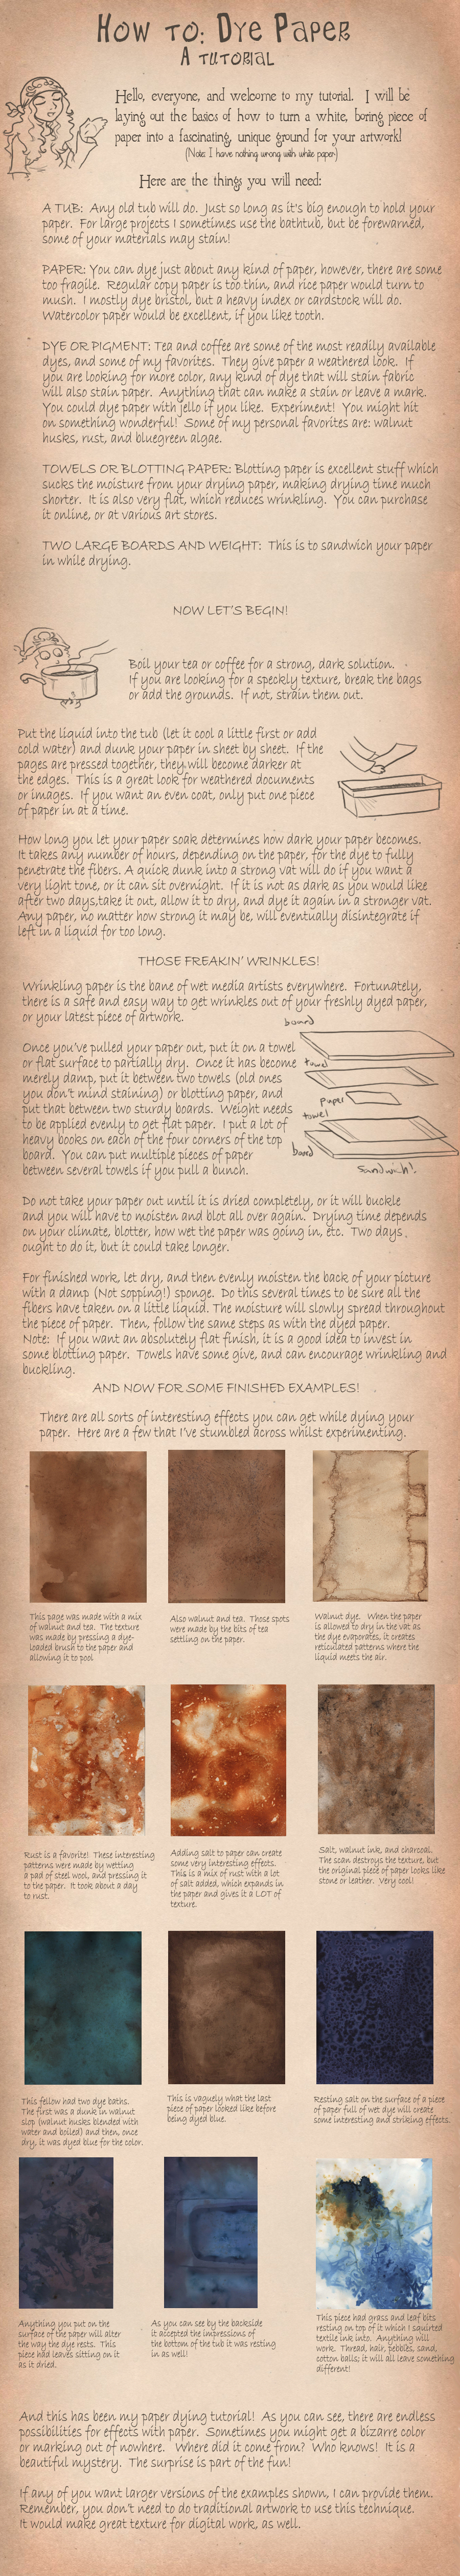 How to Dye Paper by hibbary